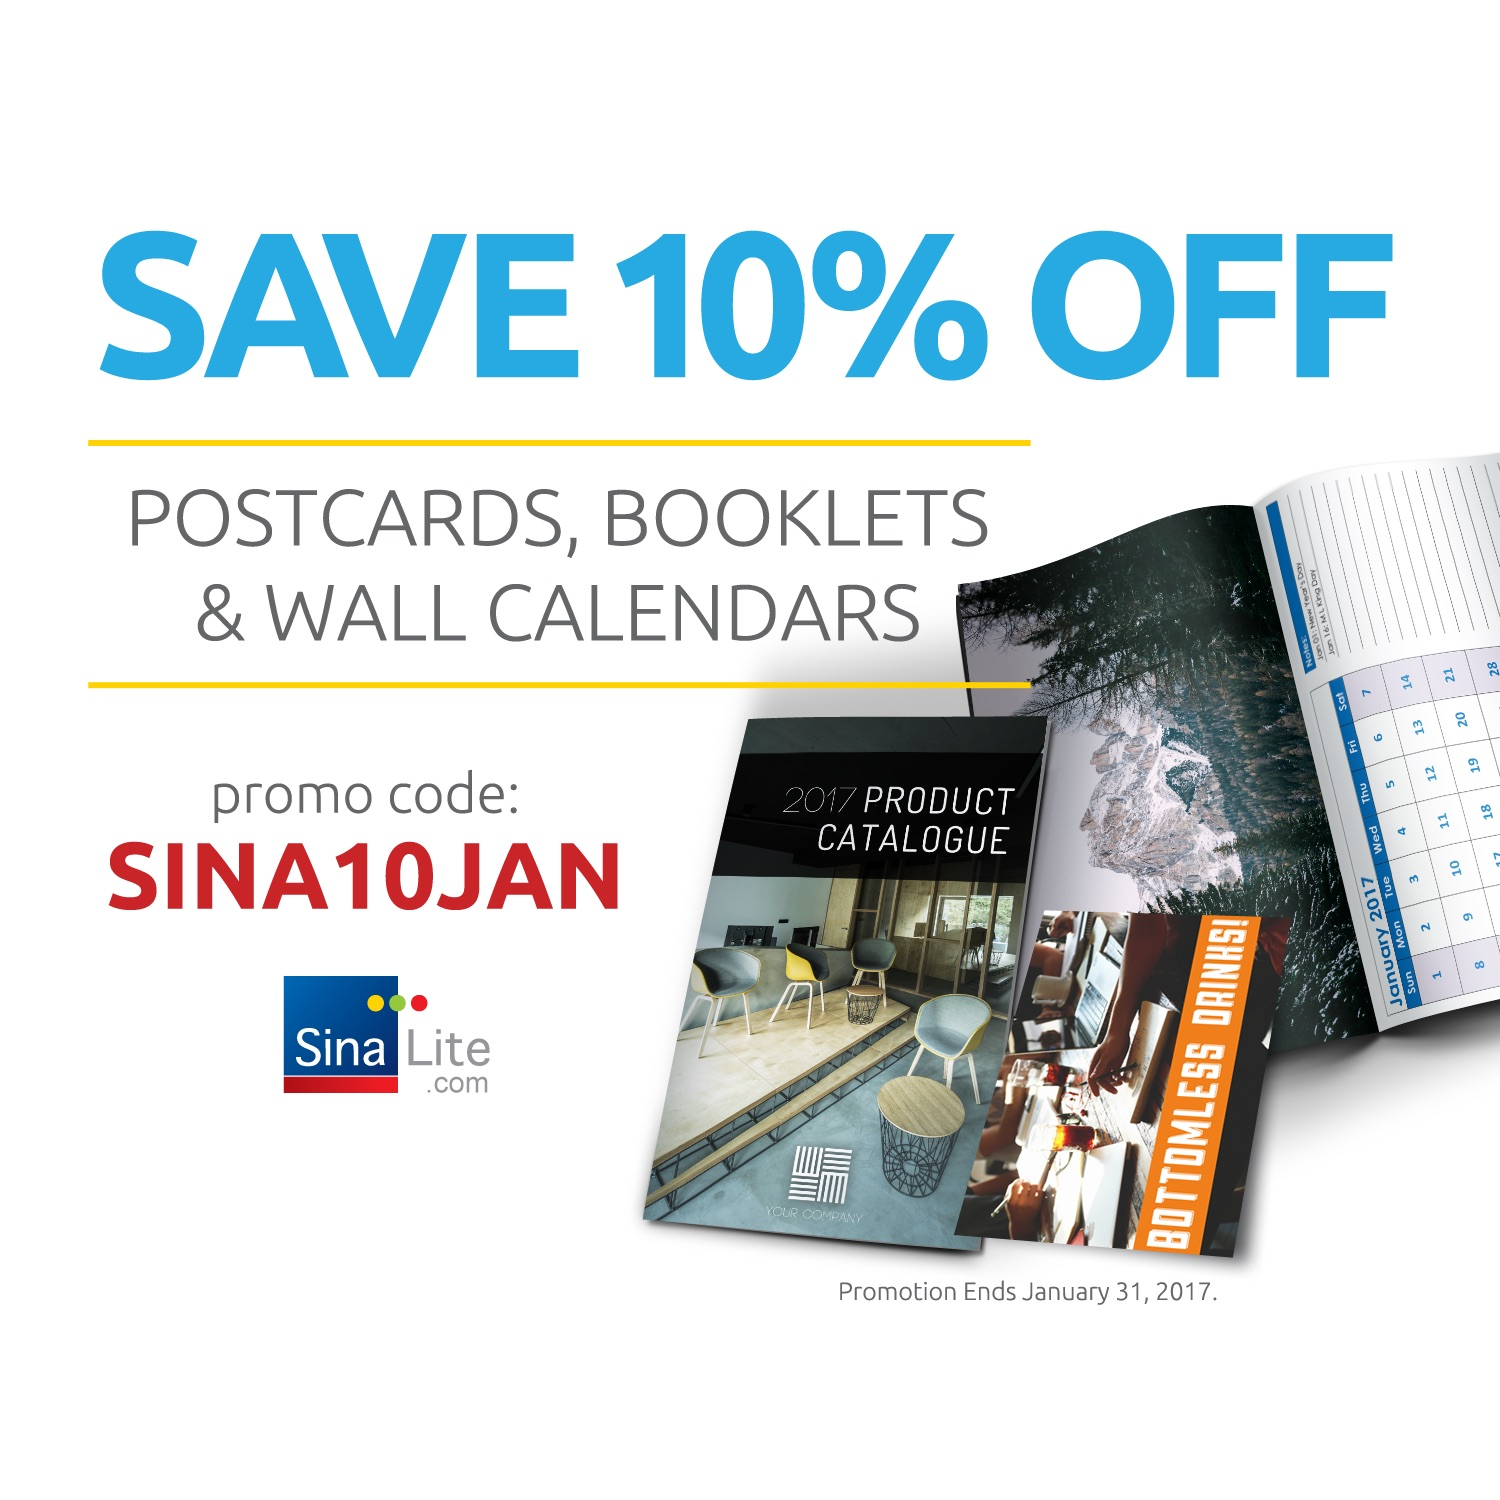 Special Discount Code for Our Readers #Artists Get 10-15% Off Printing Services on Cards, Books, Mags, Calendars, Banners